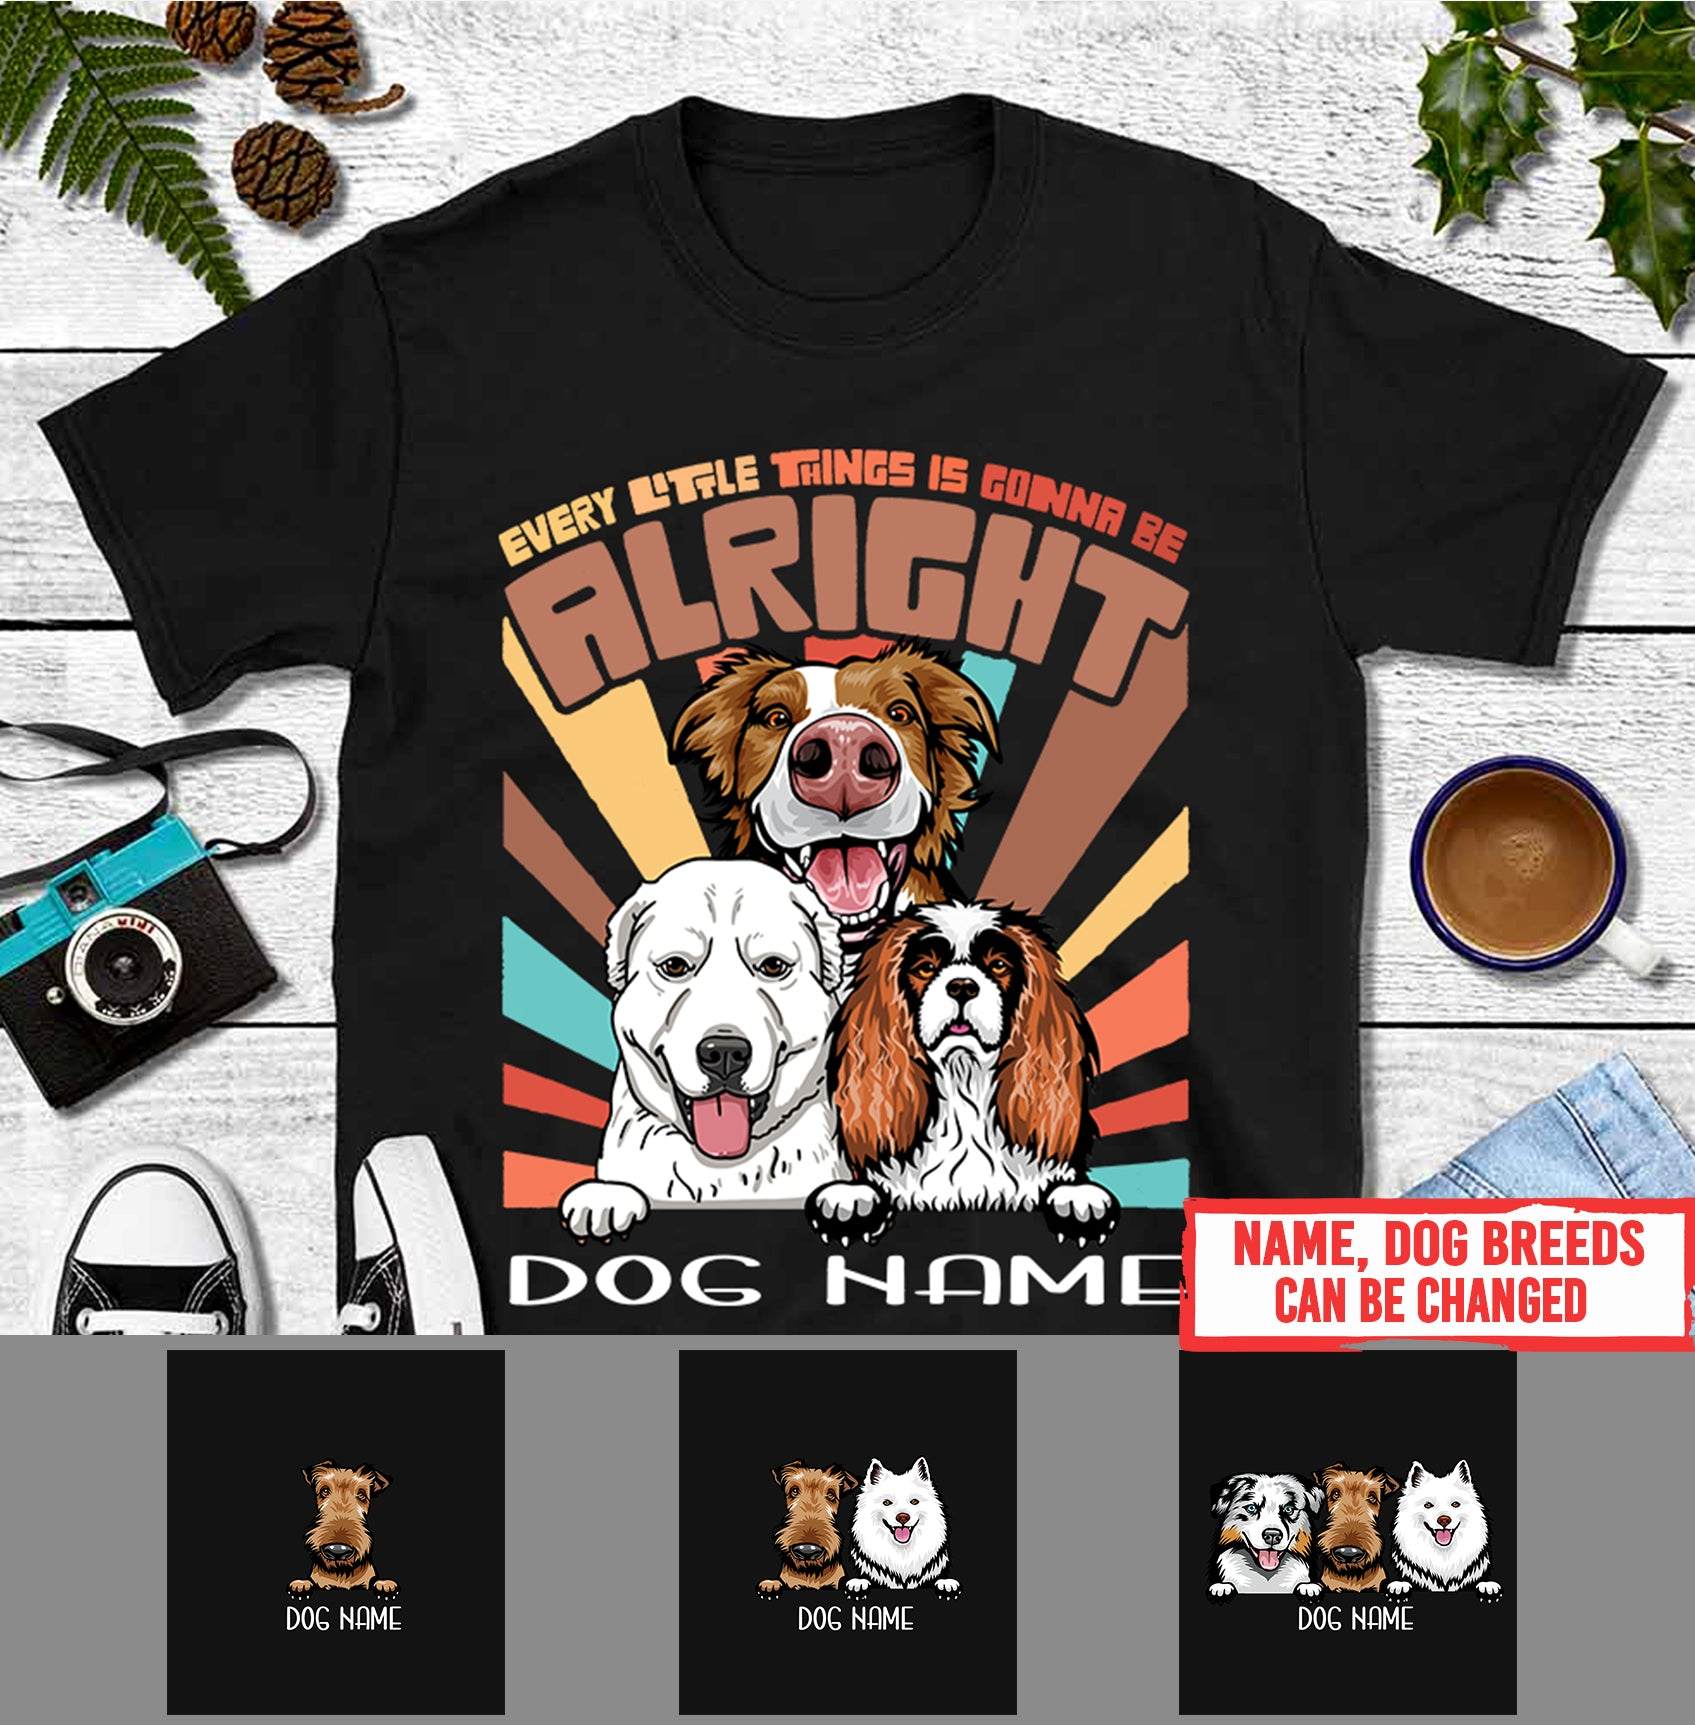 Personalized Dog Vintage Shirt - Every little things is gonna be alright